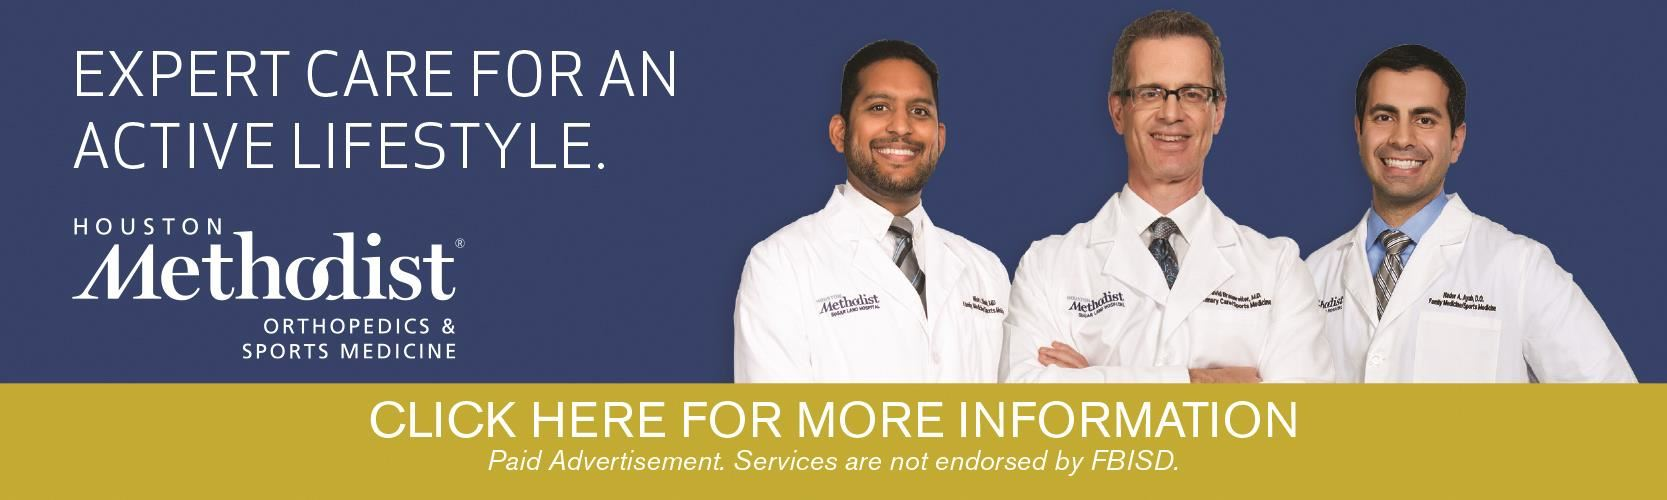 Paid Advertisement by Houston Methodist Orthopedics & Sports Medicine